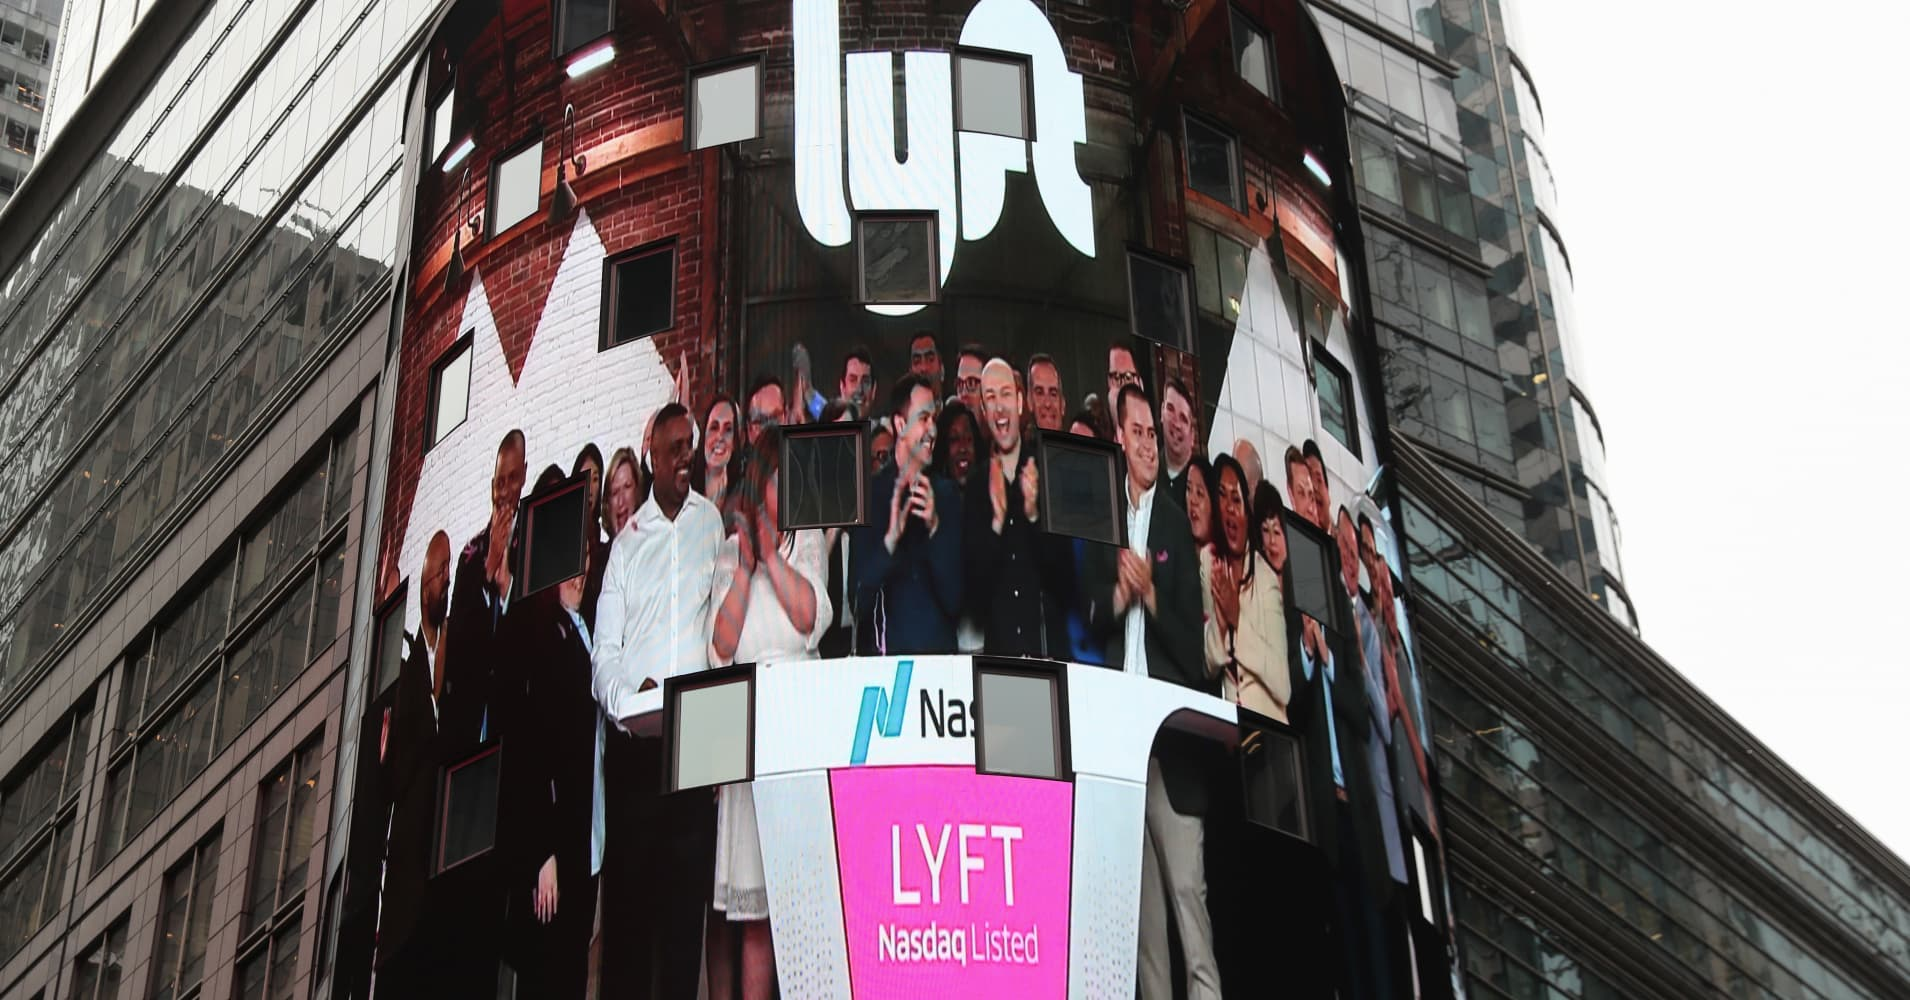 Lyft's highly anticipated IPO is here—3 experts share their thoughts